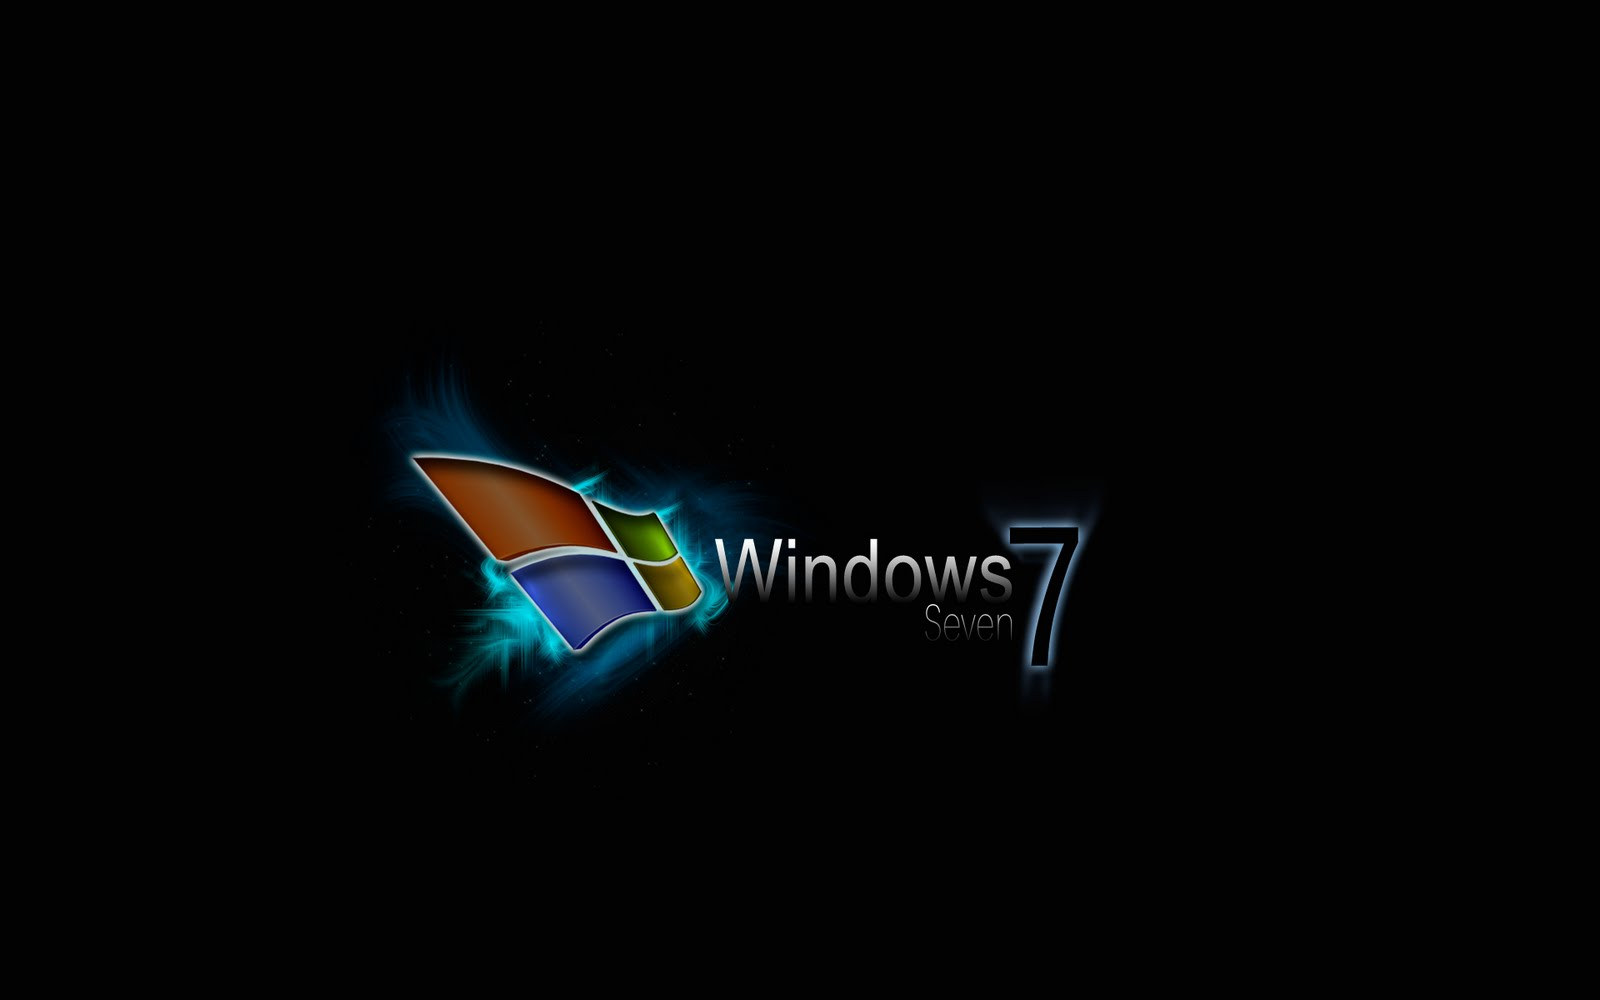 Windows 7 Wallpaper   1920x1200 Hd Desktop Wallpaper 1600x1000